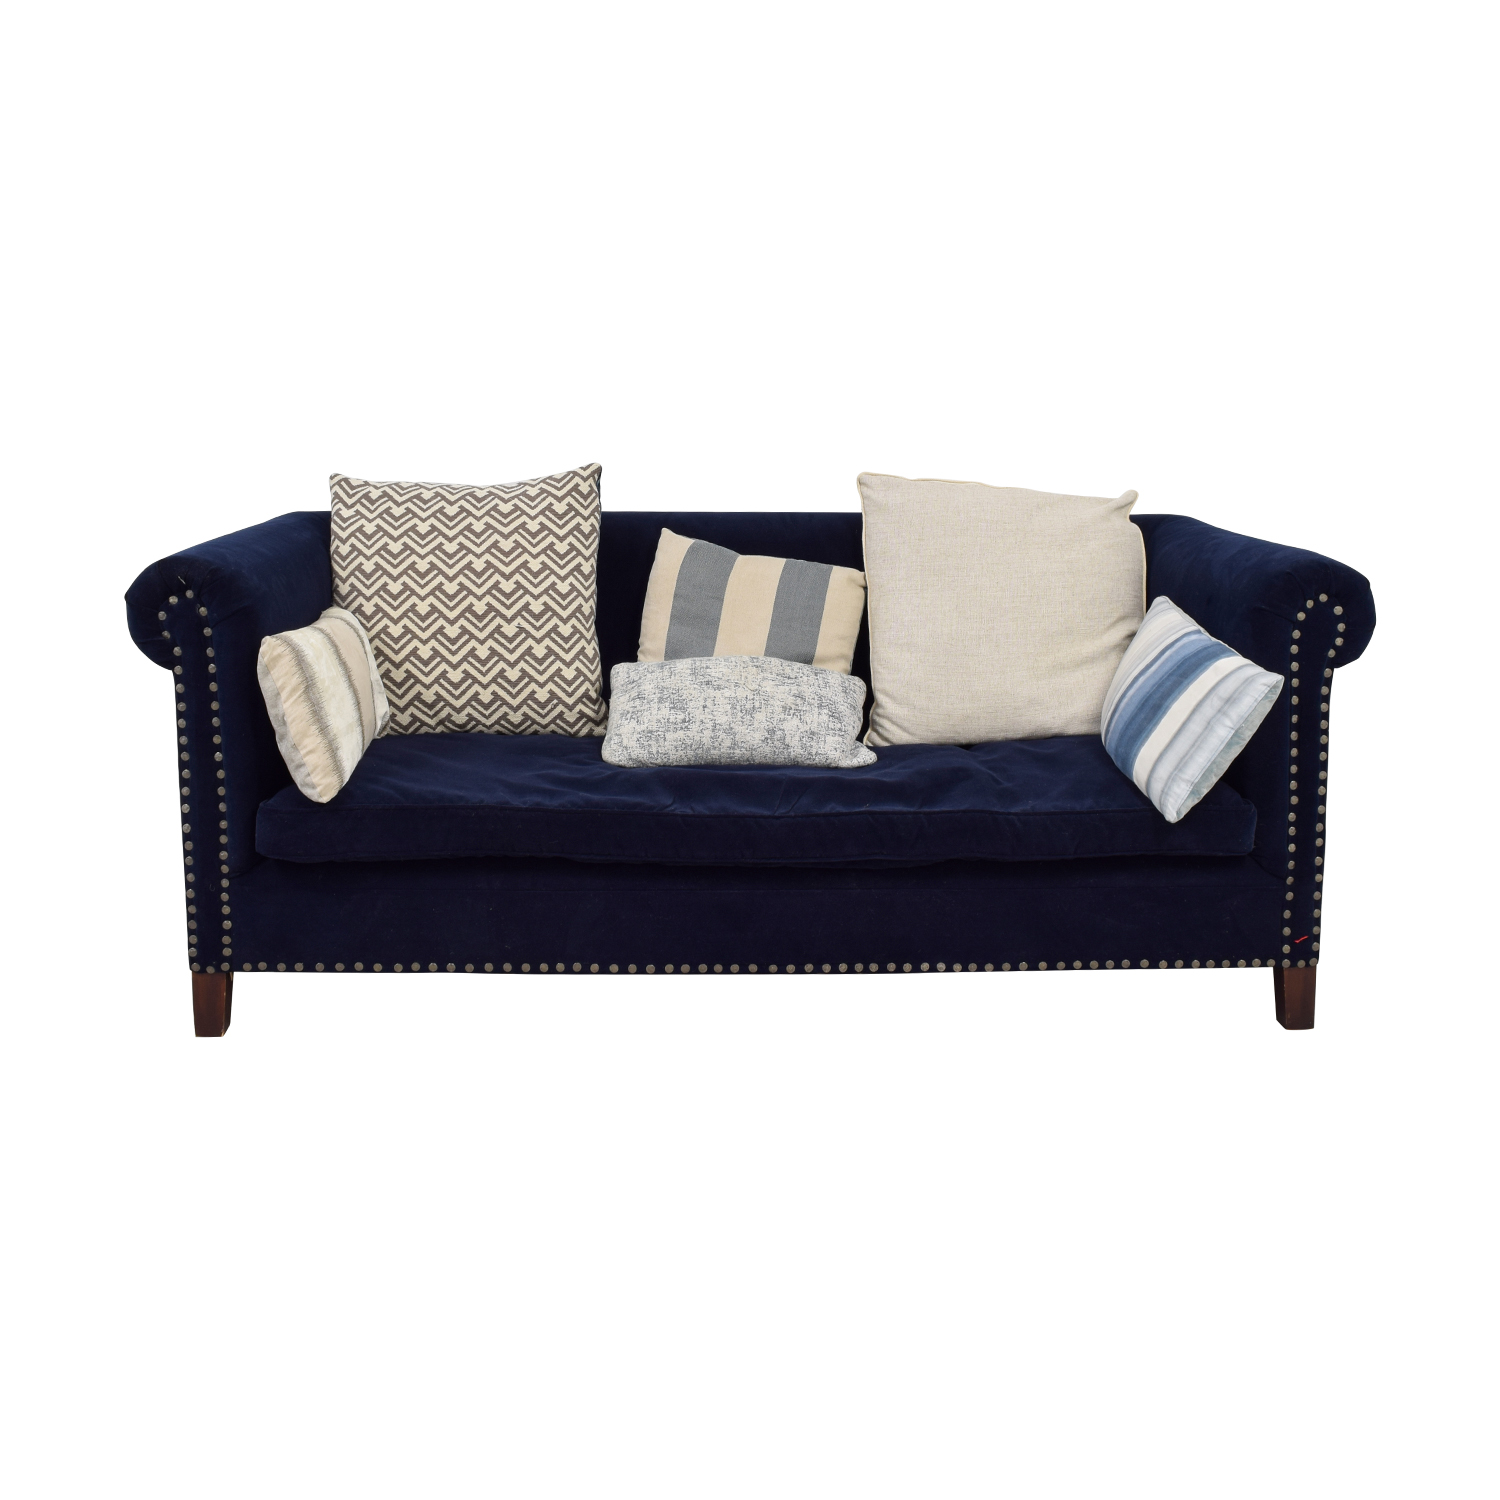 Ralph Lauren Blue Low-Pile Velvet Nailhead Sofa / Sofas